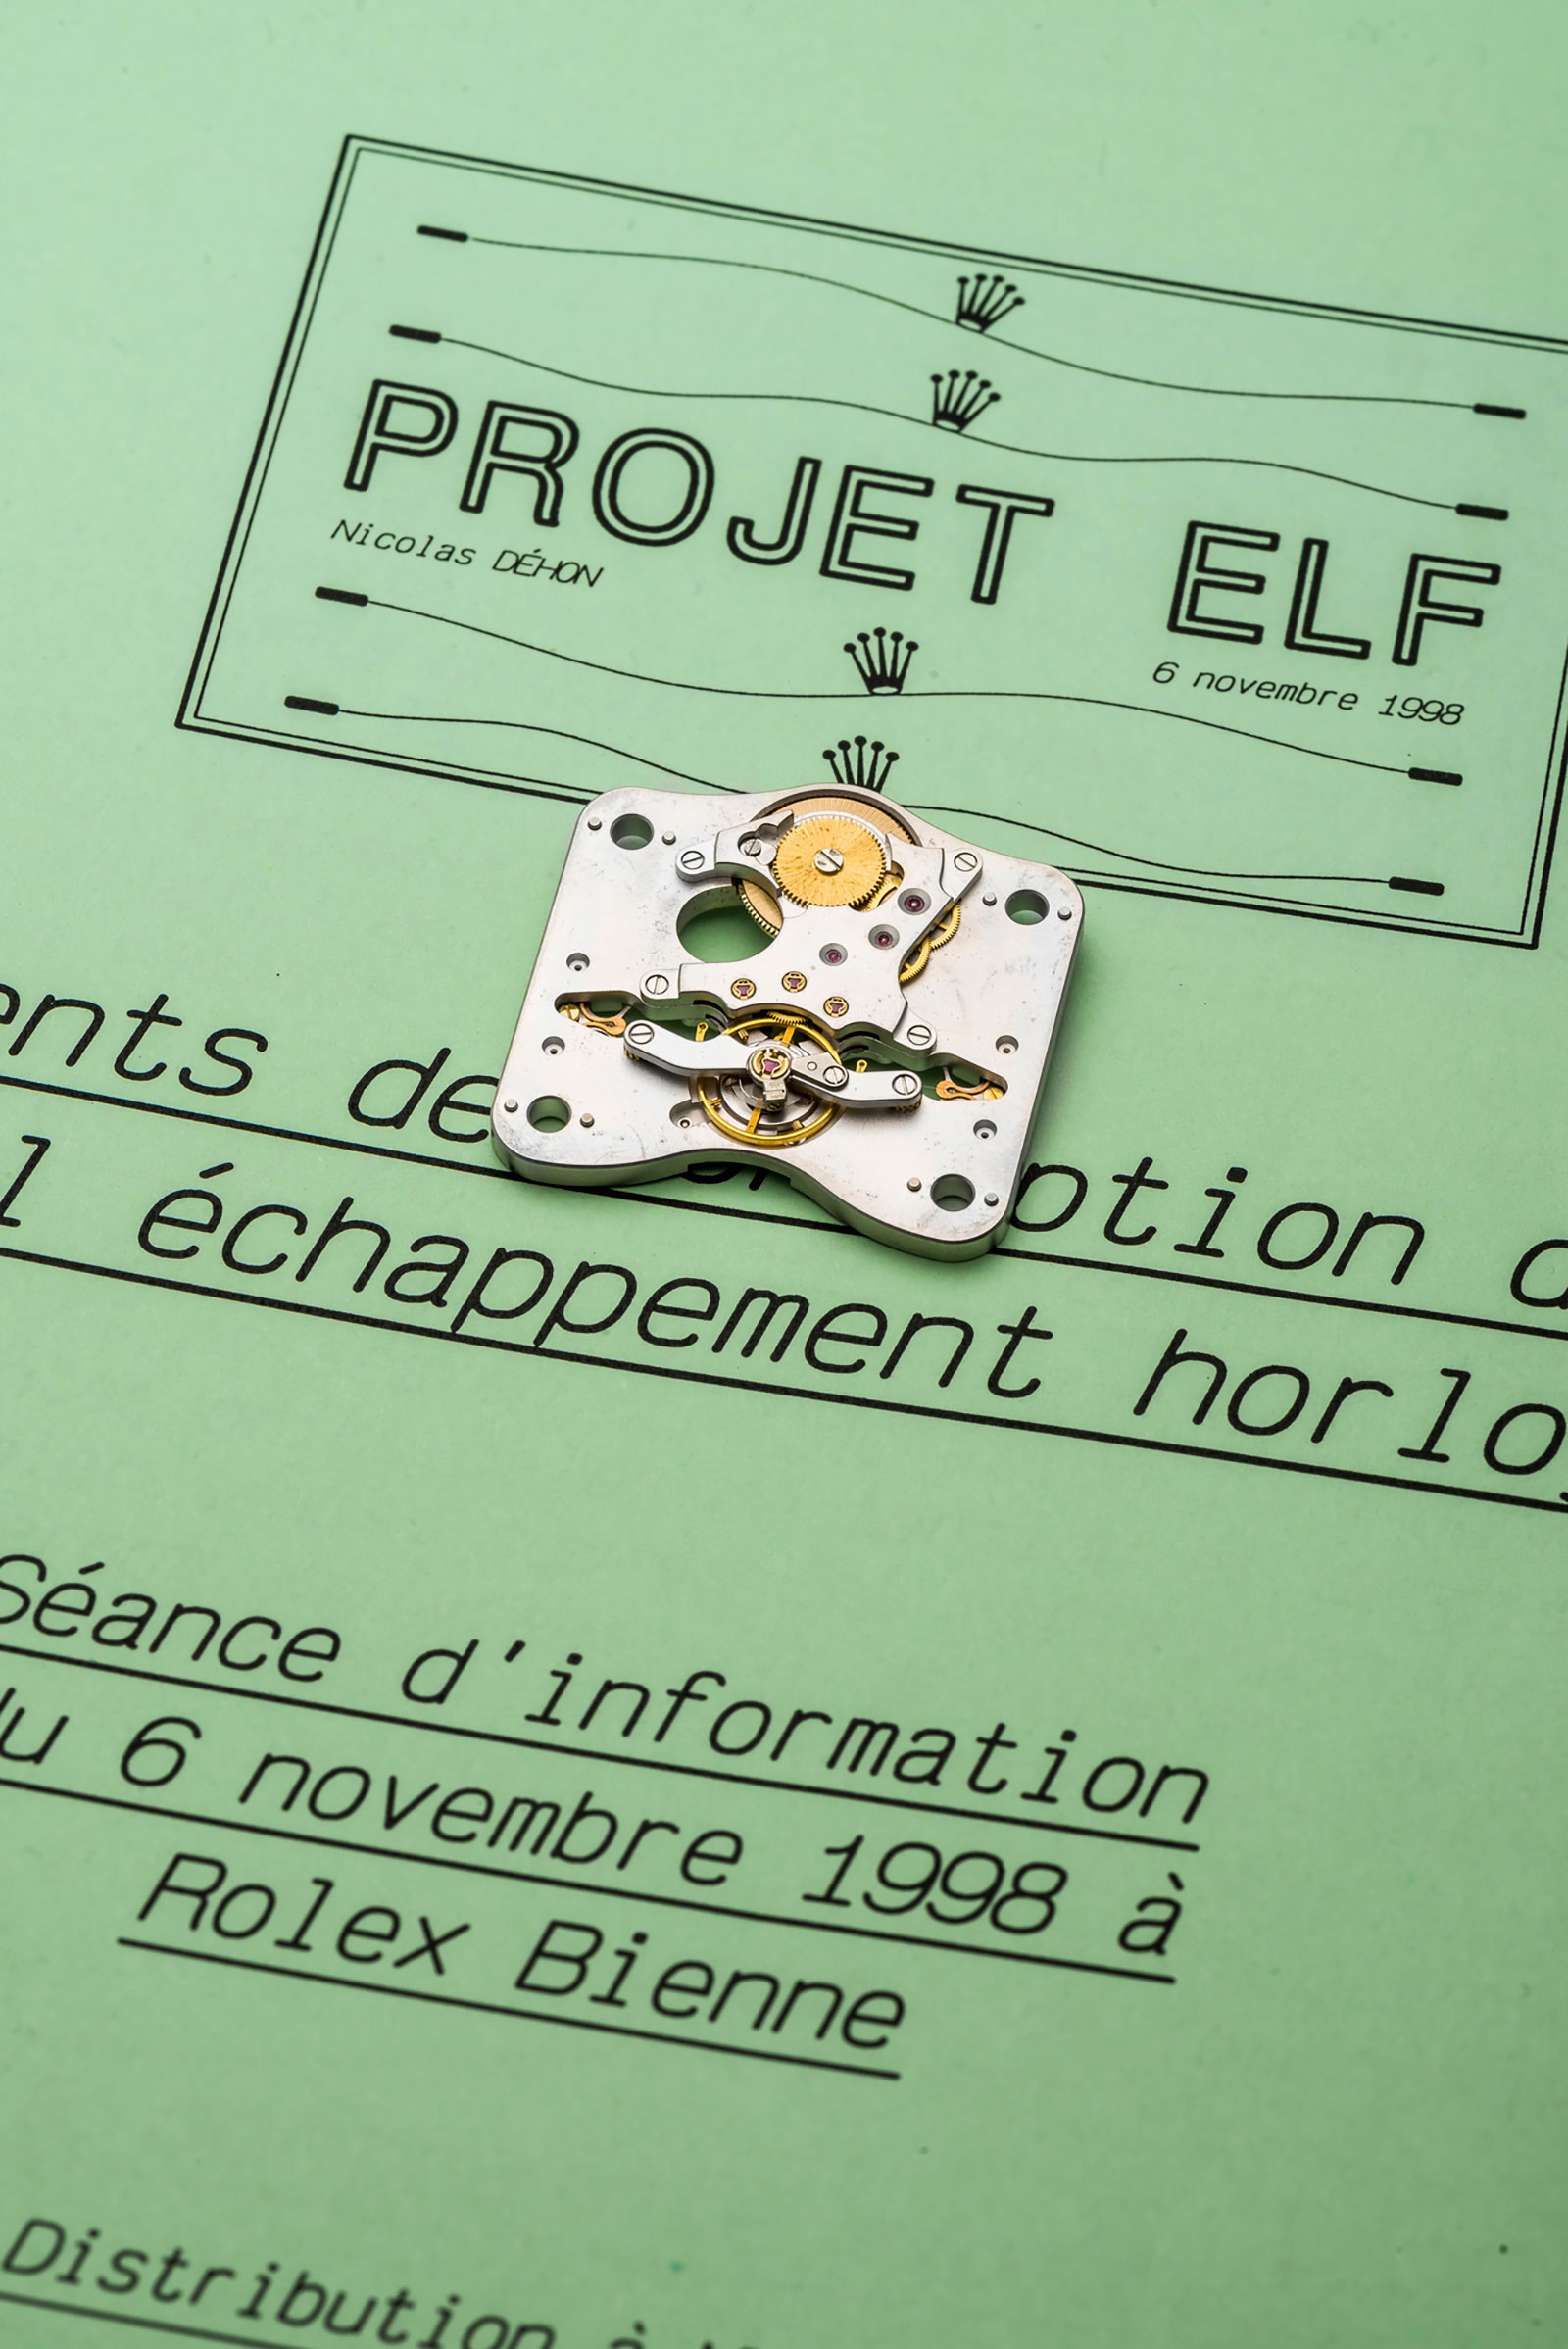 project-elf-rolex-nicolas-dehon